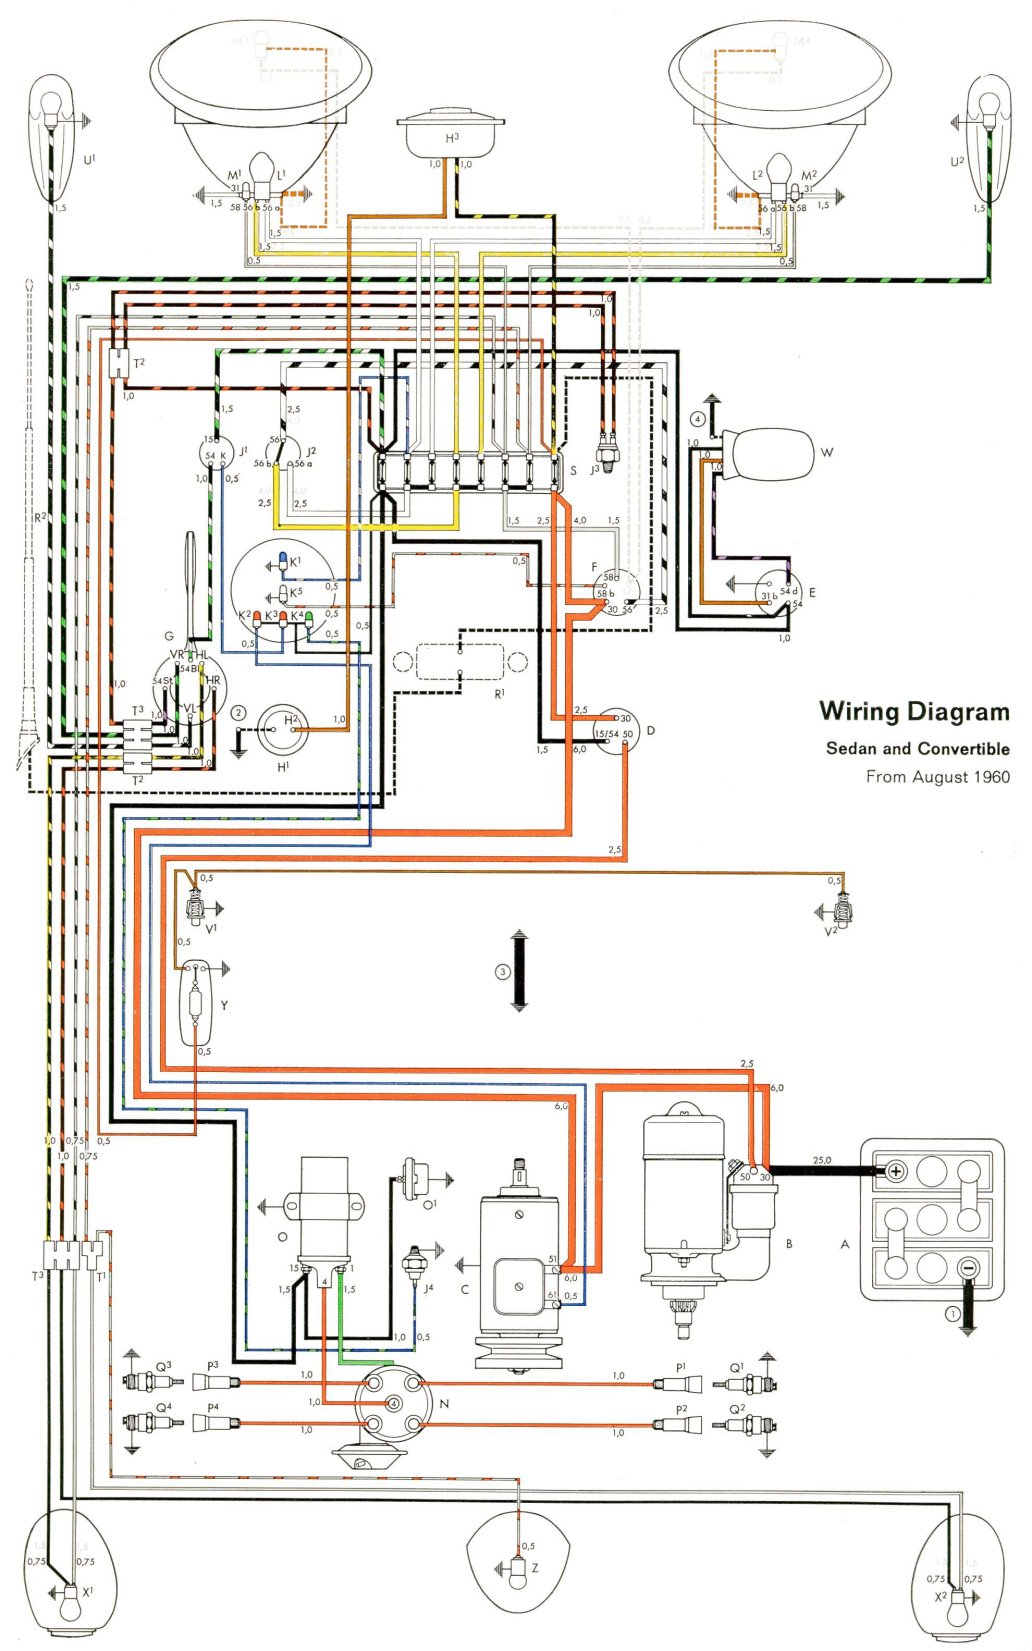 bug_61 1961 beetle wiring diagram thegoldenbug com 1957 vw beetle wiring diagram at bayanpartner.co